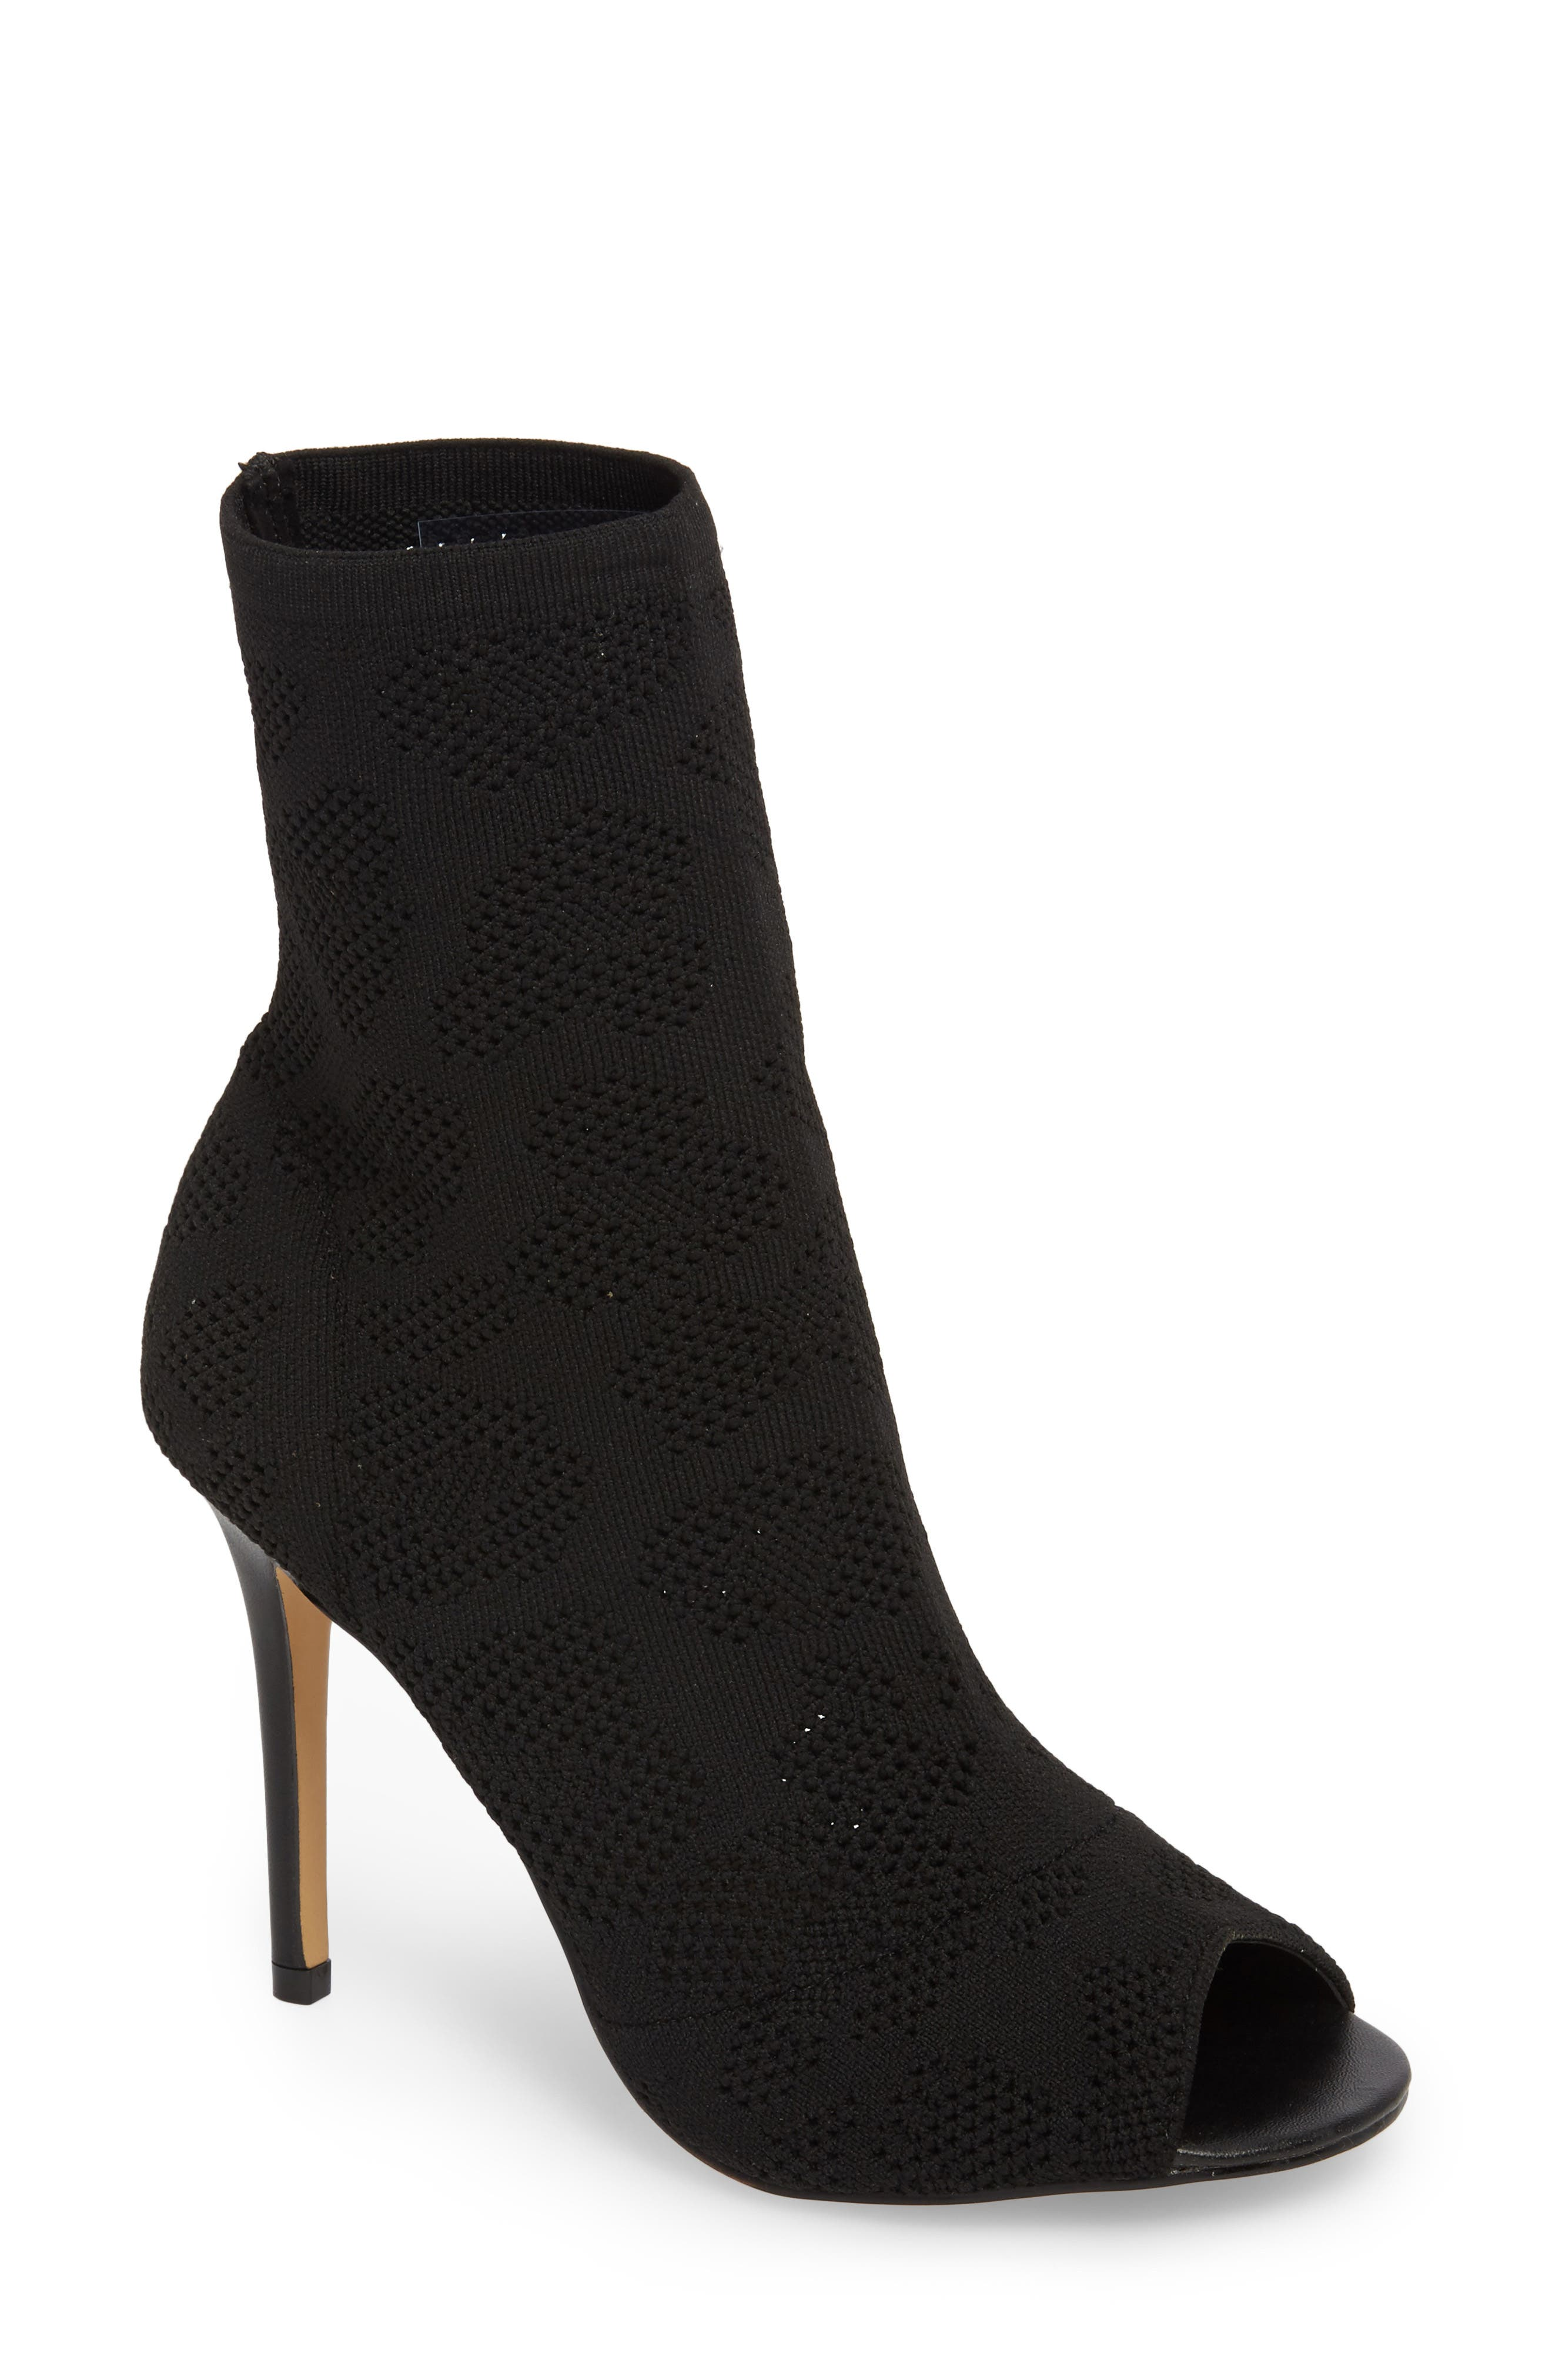 Ranger Sock Knit Open Toe Bootie,                         Main,                         color, Black Stretch Fabric